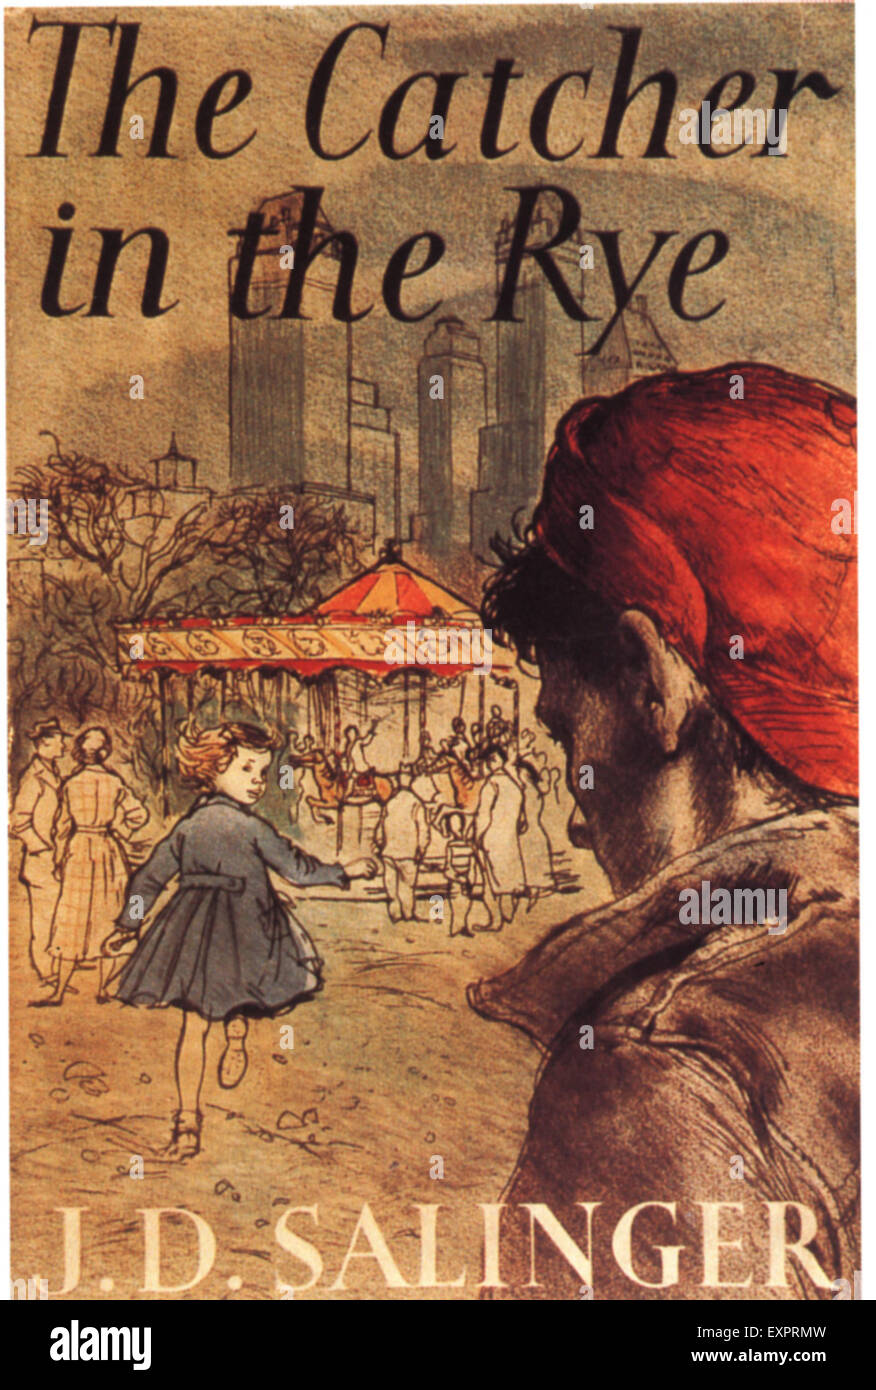 1950s Usa The Catcher In The Rye By Jd Salinger Book Cover